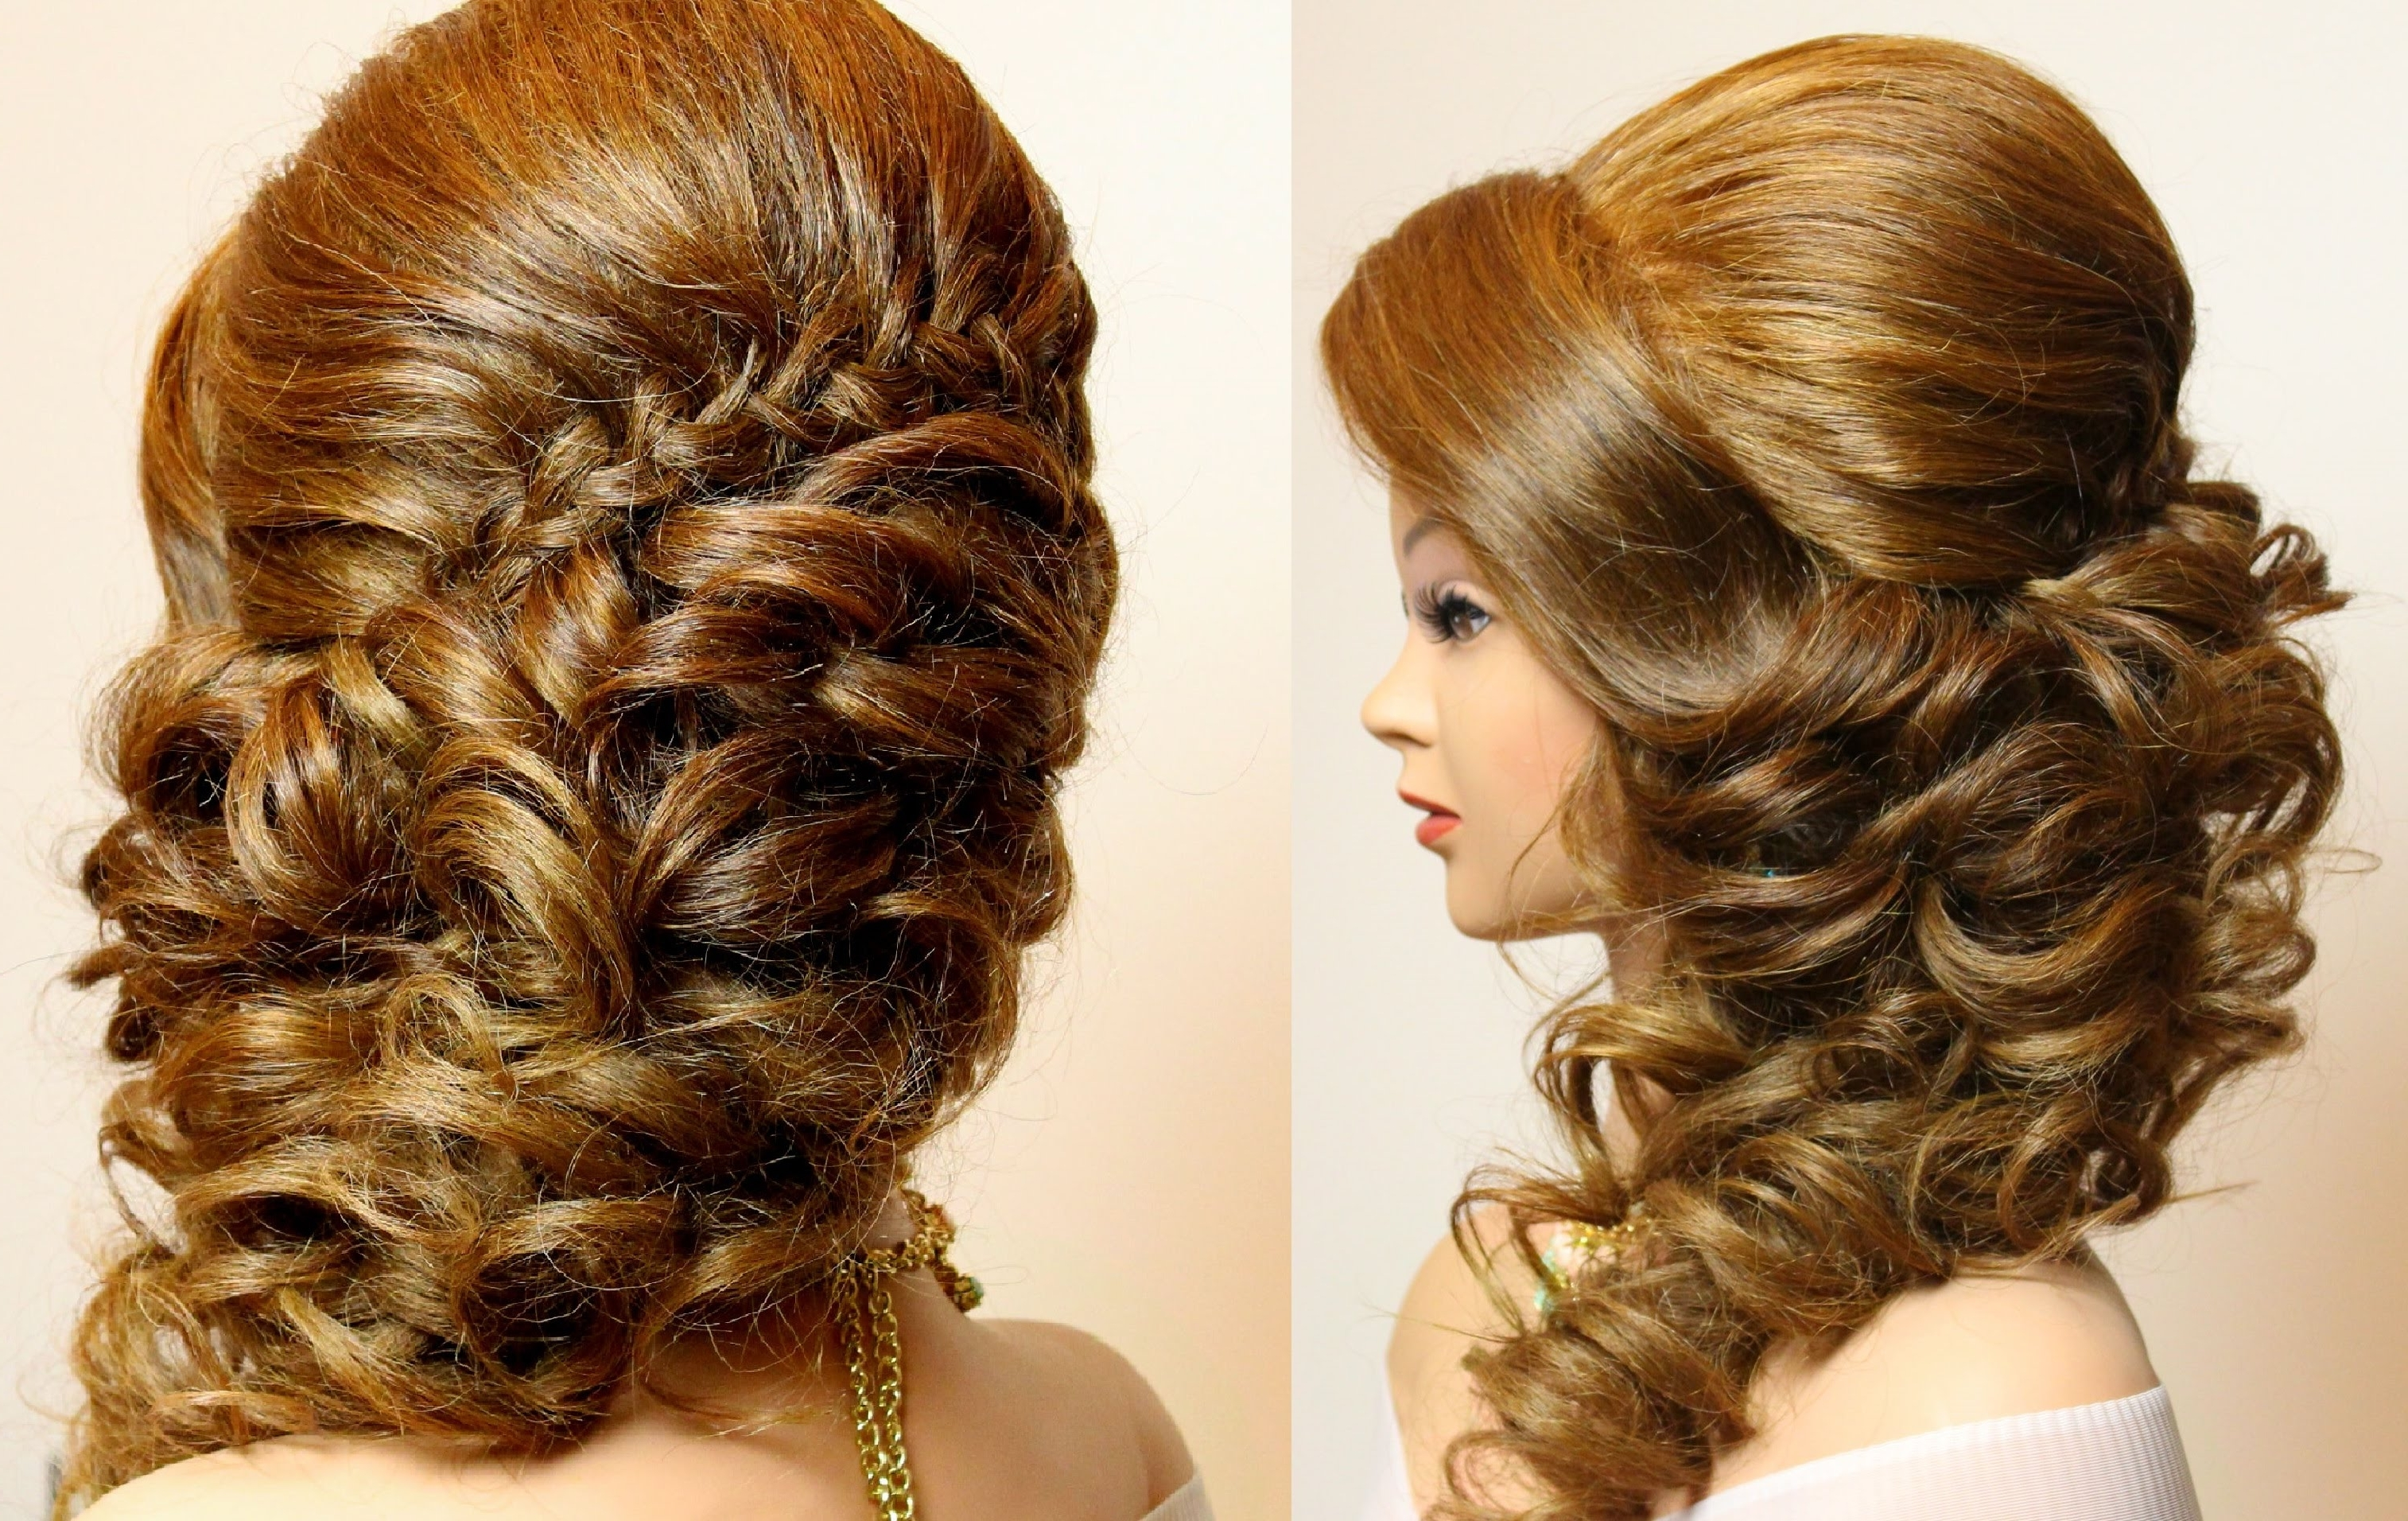 Well Liked Ringlets Wedding Hairstyles Within Bridal Hairstyle With Braid And Curls (View 15 of 15)